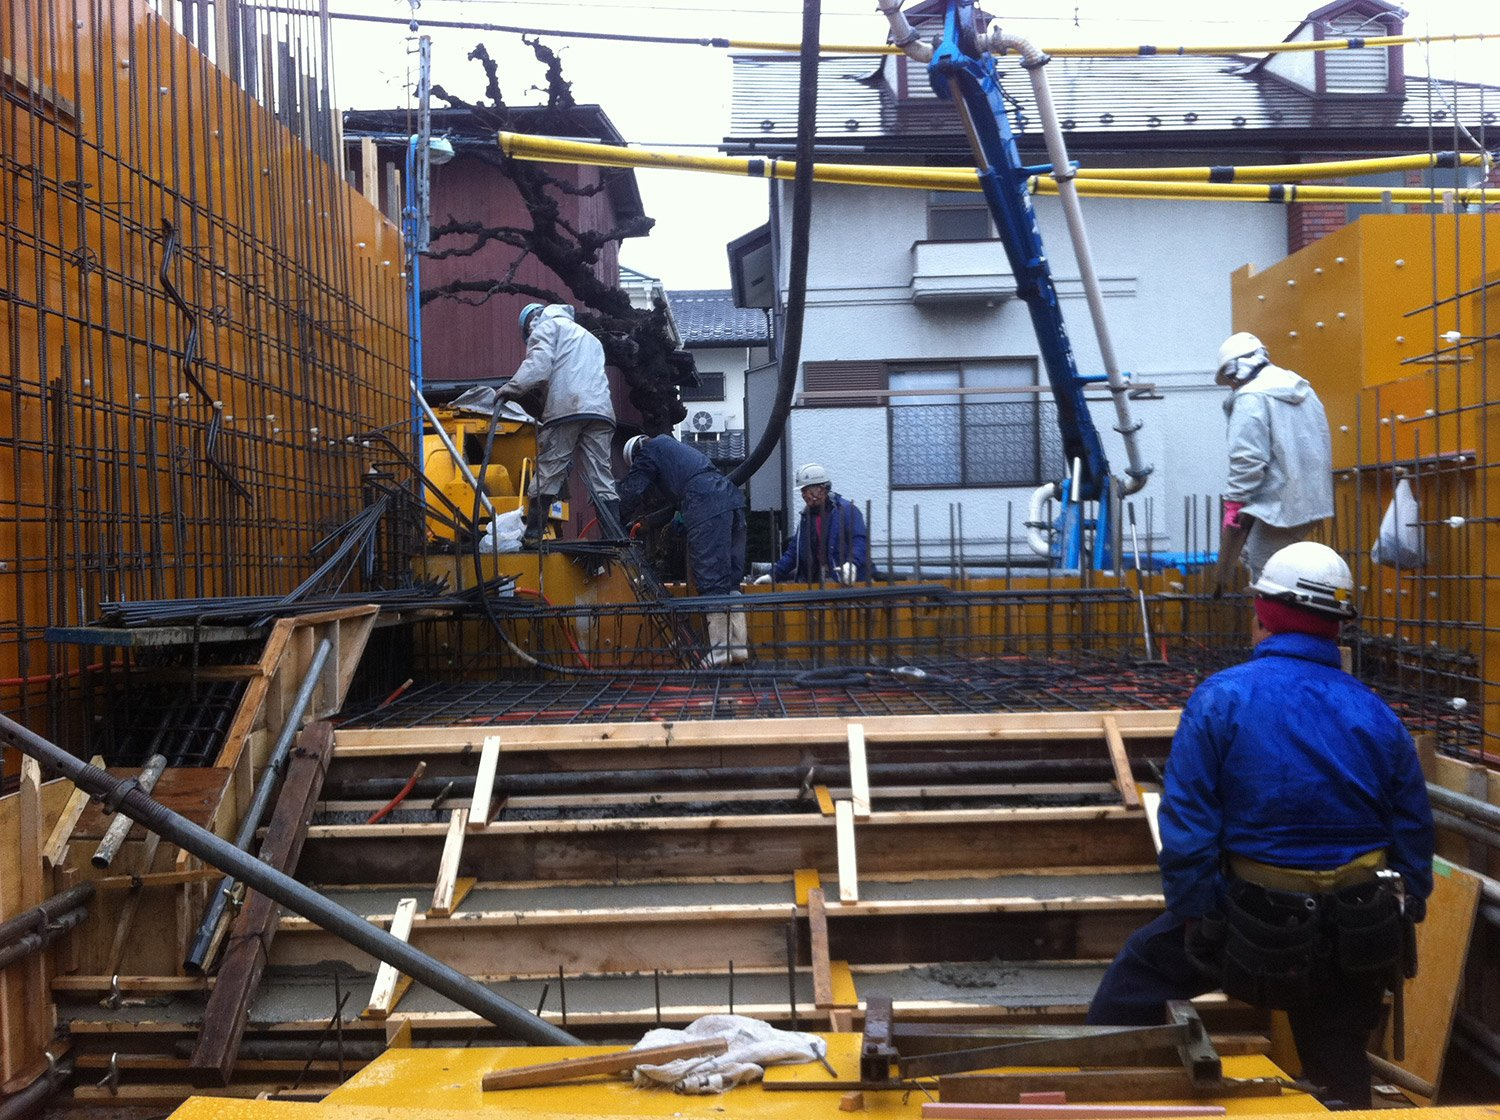 Concrete placing.Work was proceeding carefully in a narrow site.